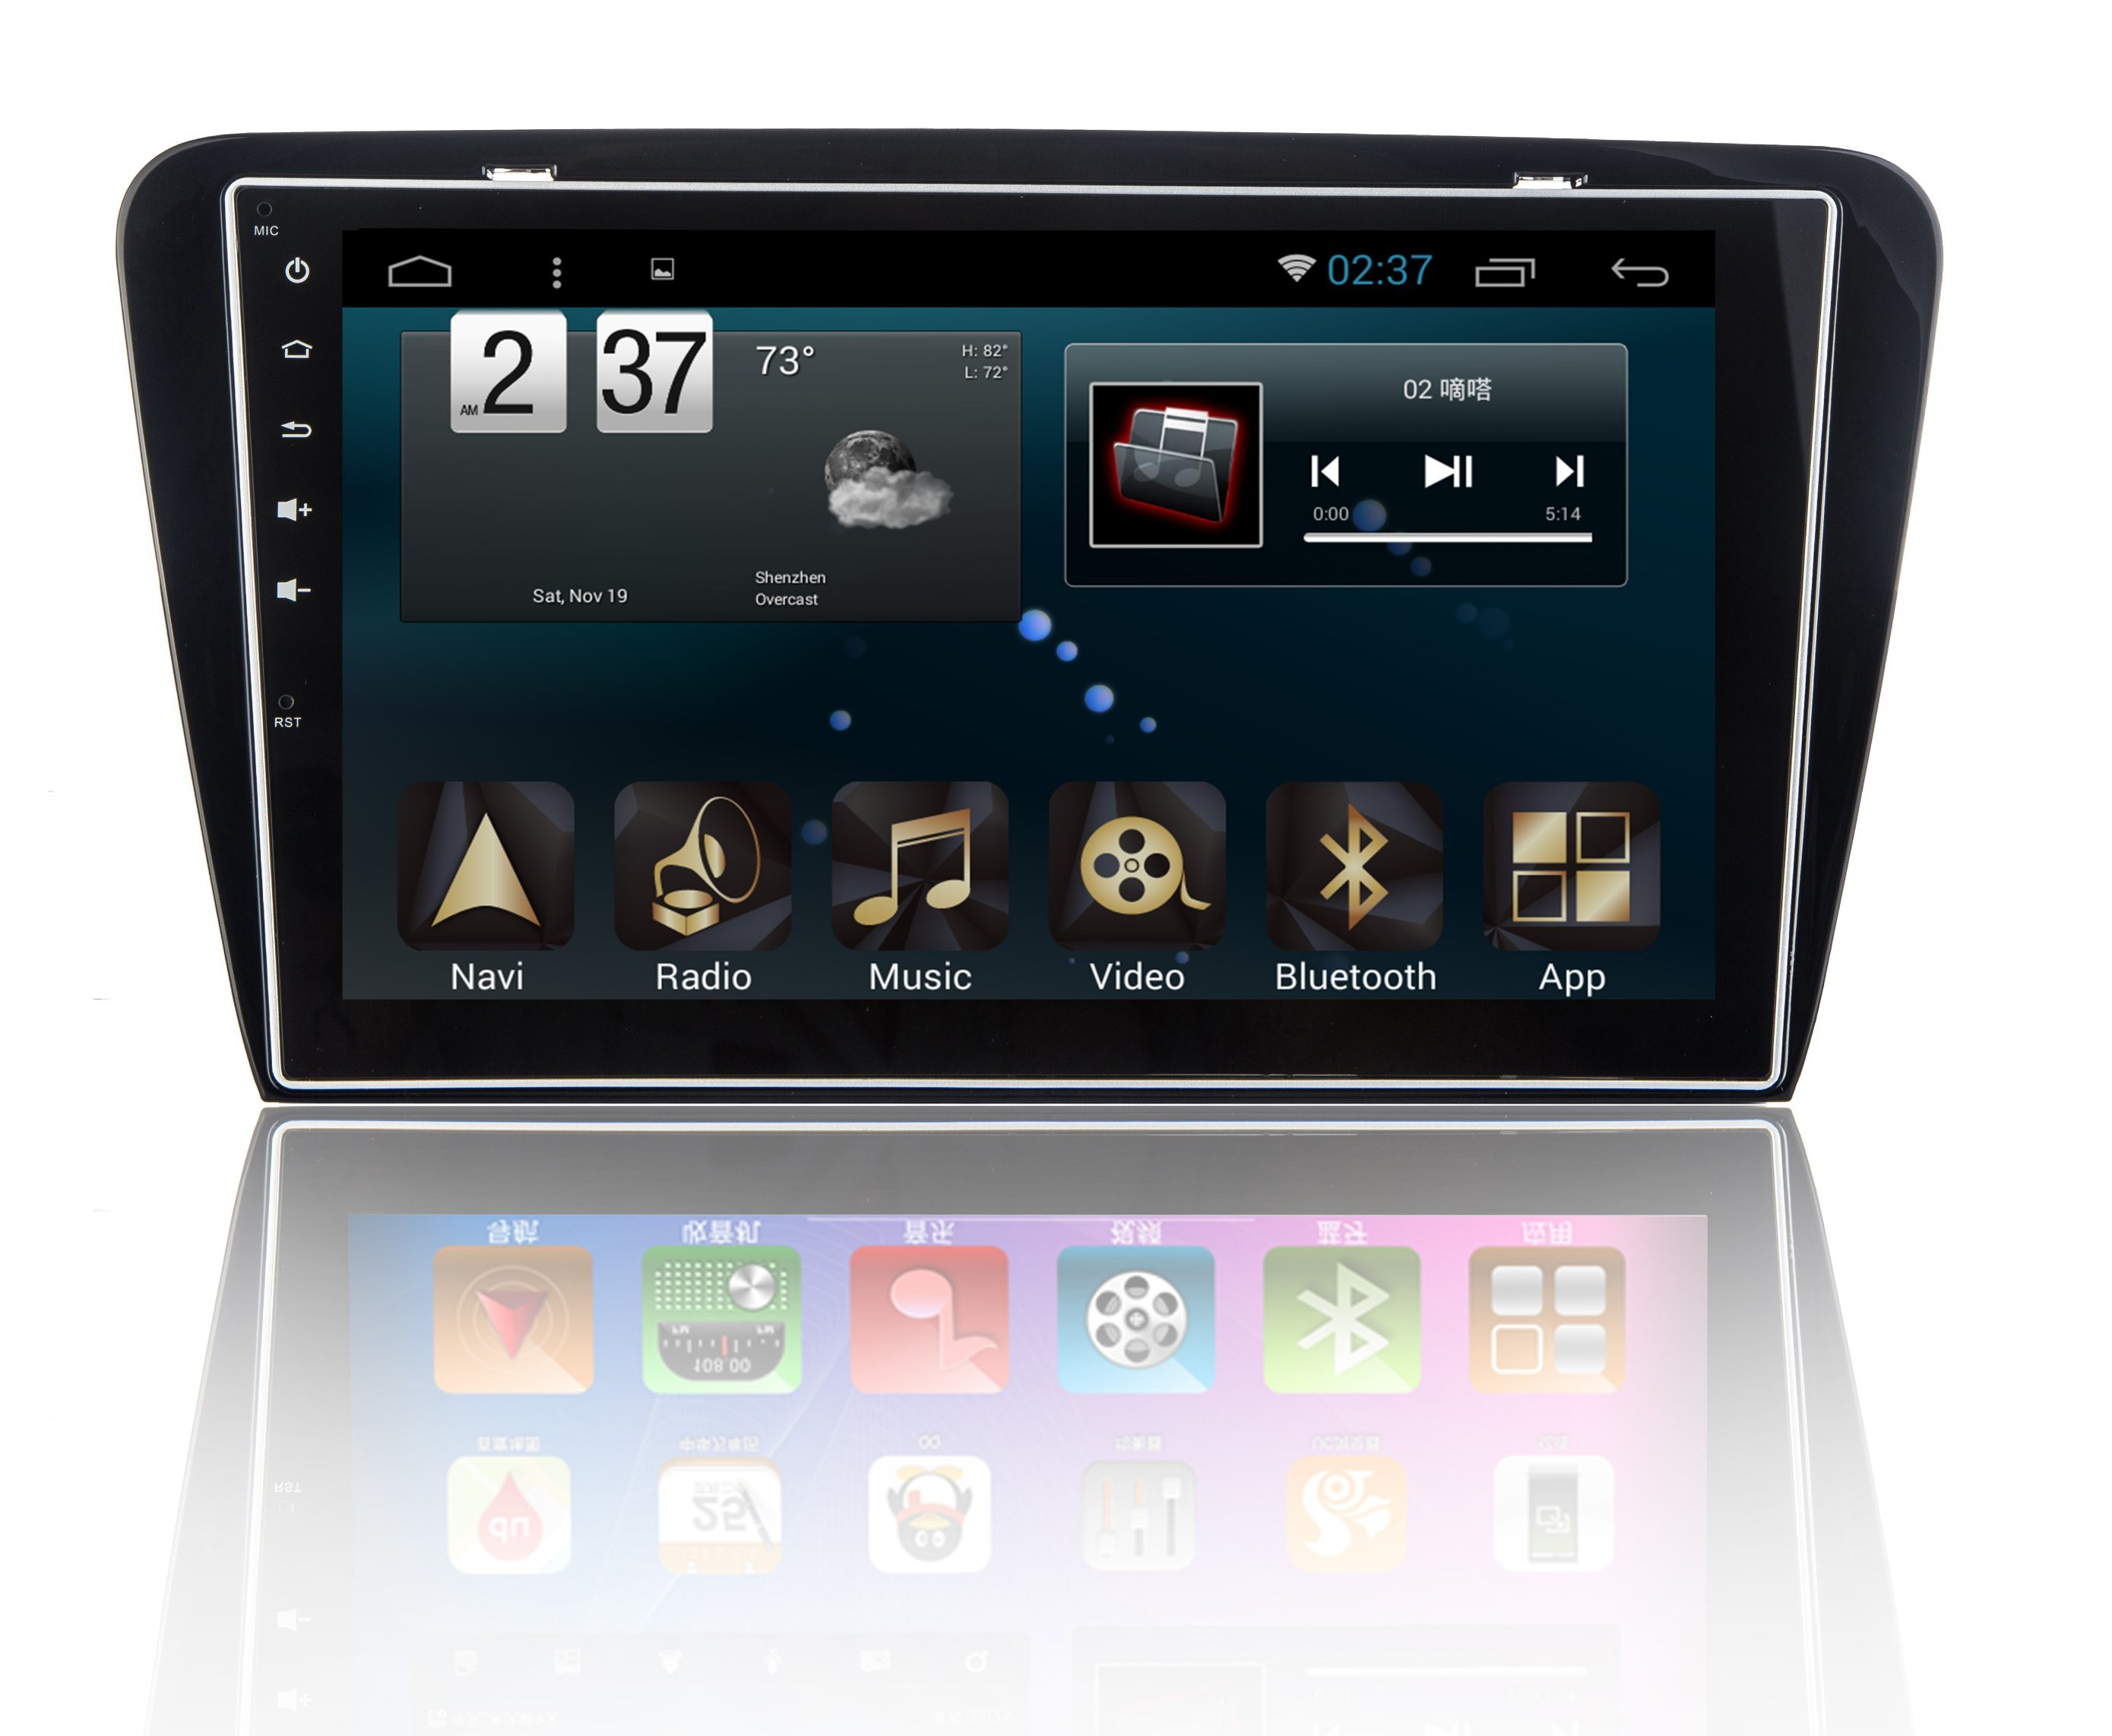 New Ui Android 6.0 System Car DVD Player for Skoda Octavia with Car GPS Navigation and